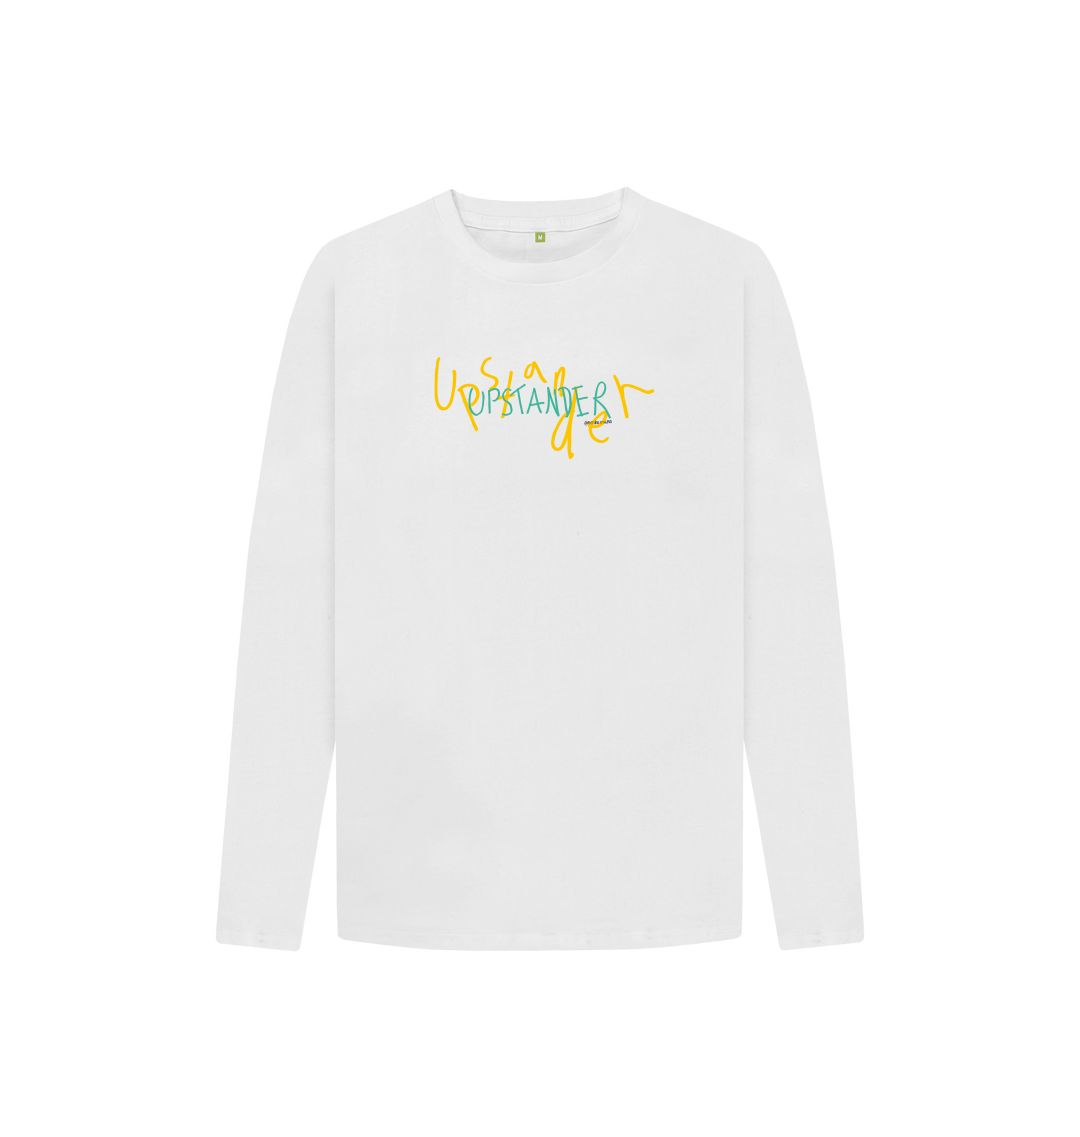 White Upstander Long Sleeve Tee (Kids)